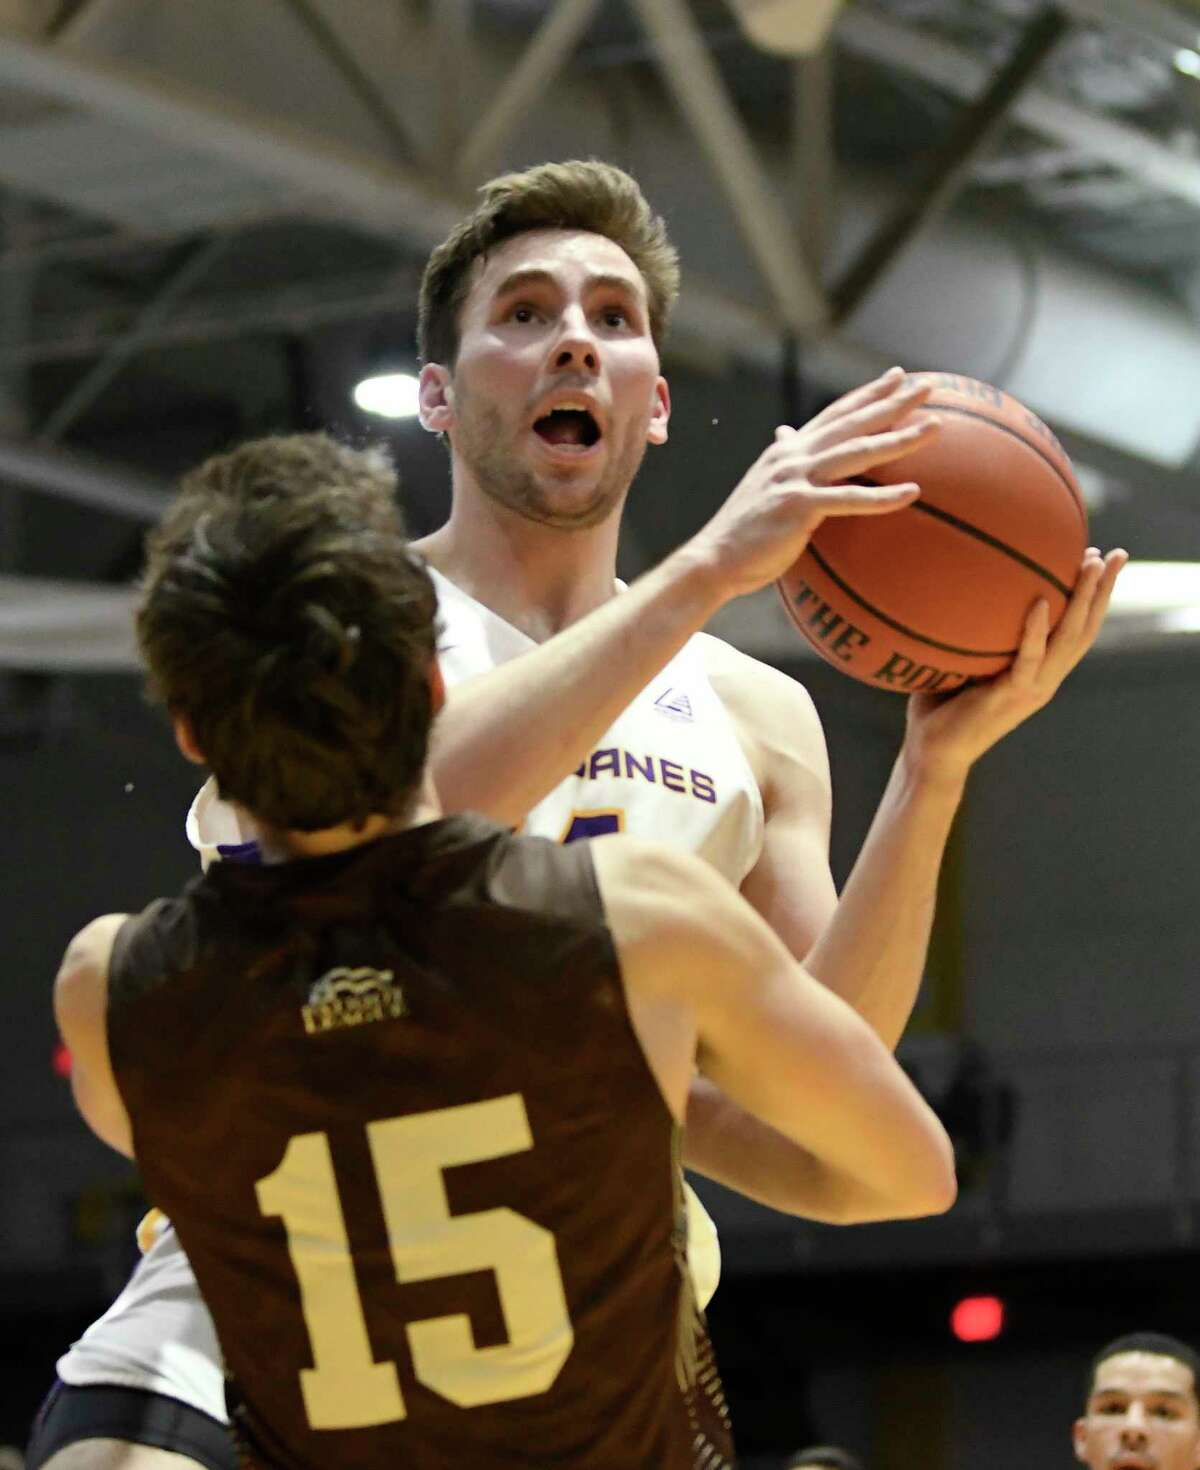 University at Albany forward Adam Lulka (14) puts up a shot over Lehigh guard Reed Fenton (15) during the first half of their home opener NCAA basketball game Saturday, Nov. 9, 2019, in Albany, N.Y. (Hans Pennink / Special to the Times Union)